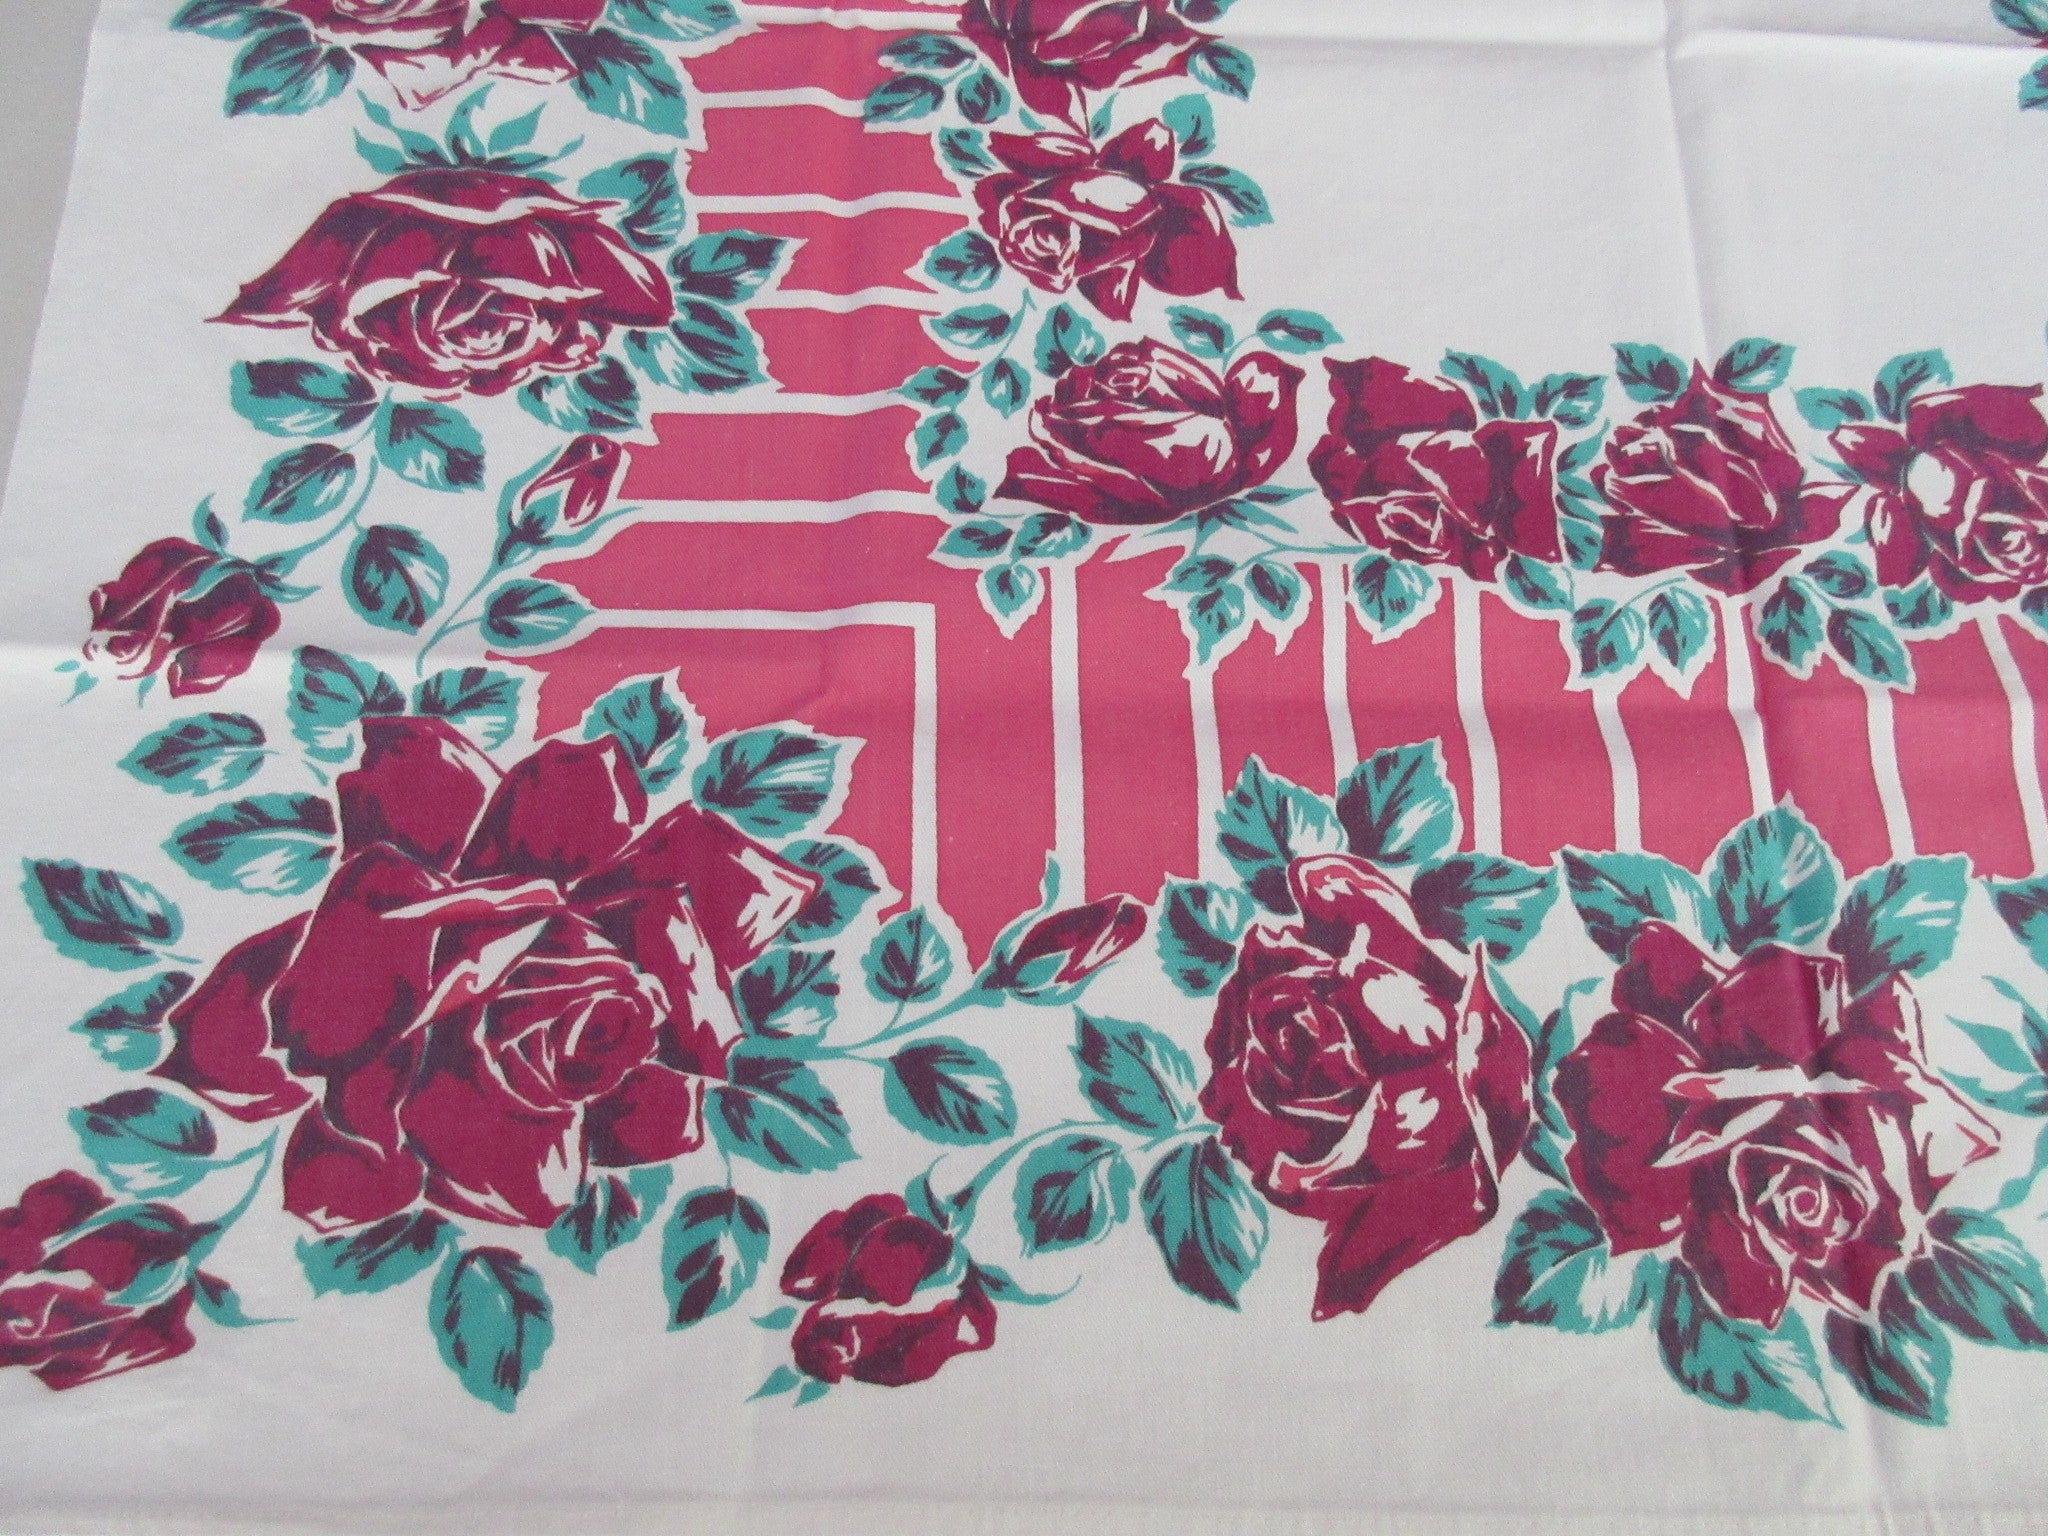 Magenta Green Roses on Pink Bars Topper Floral Vintage Printed Tablecloth (35 X 31)